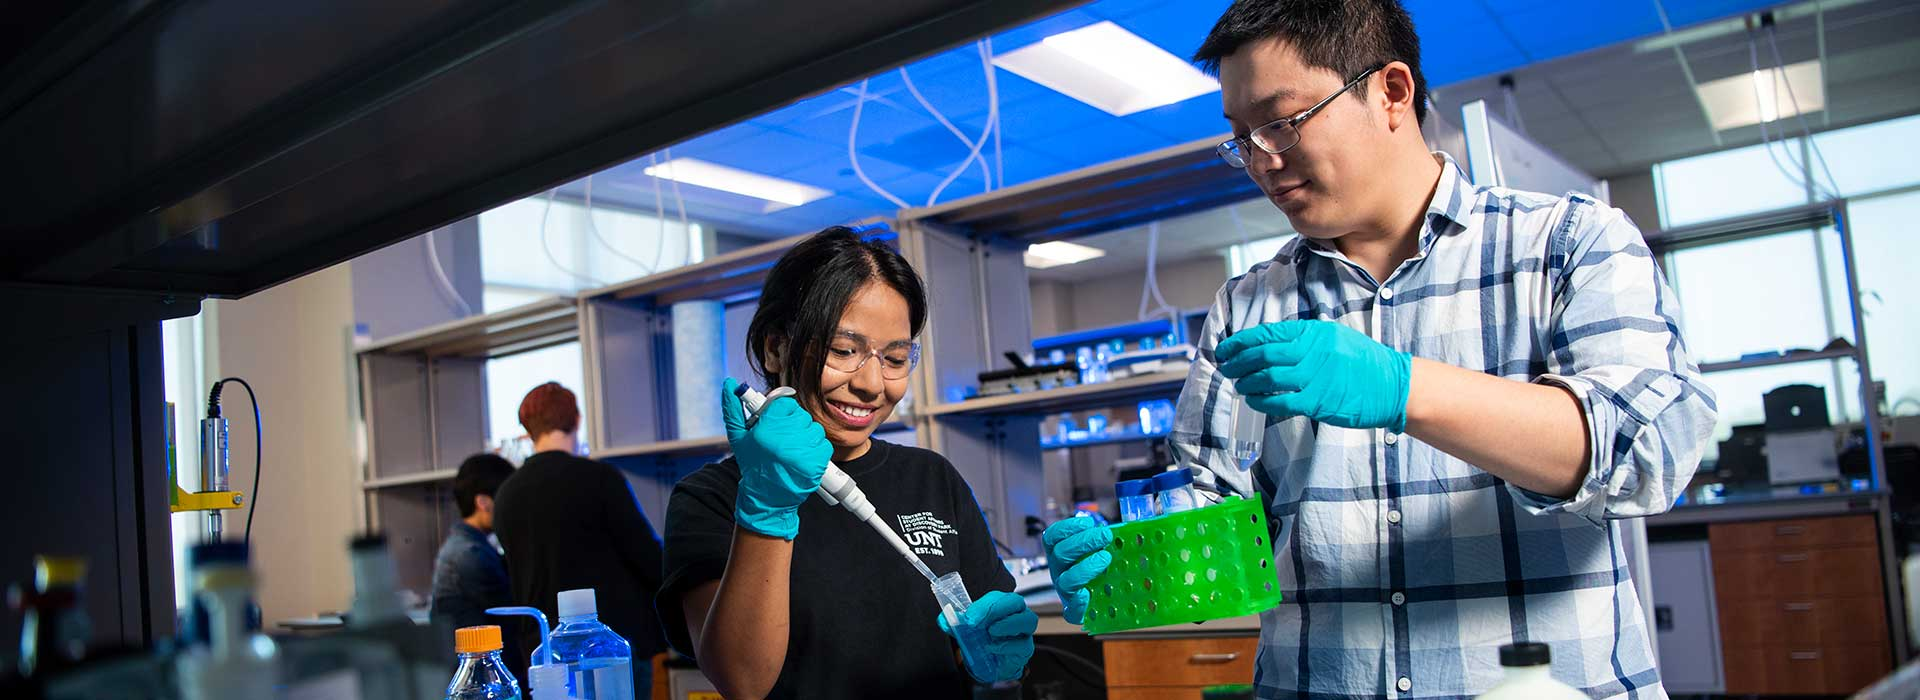 Two students collaborating in the lab.